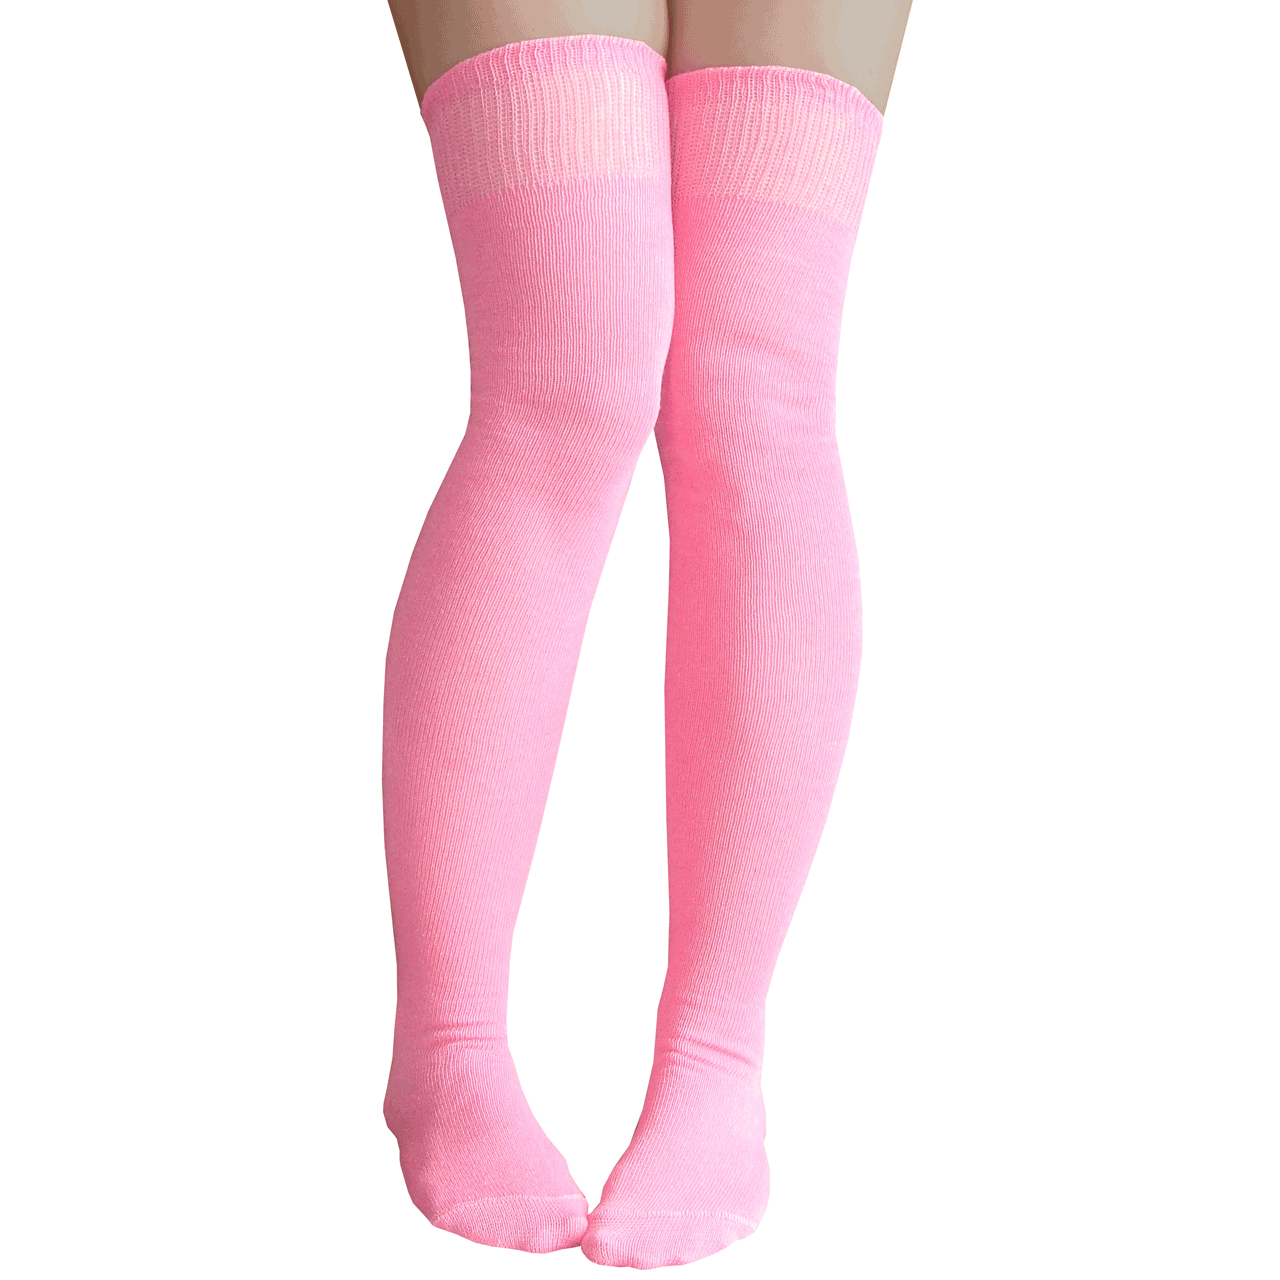 9f6d58b2ccce8 Baby Pink Thigh High Socks